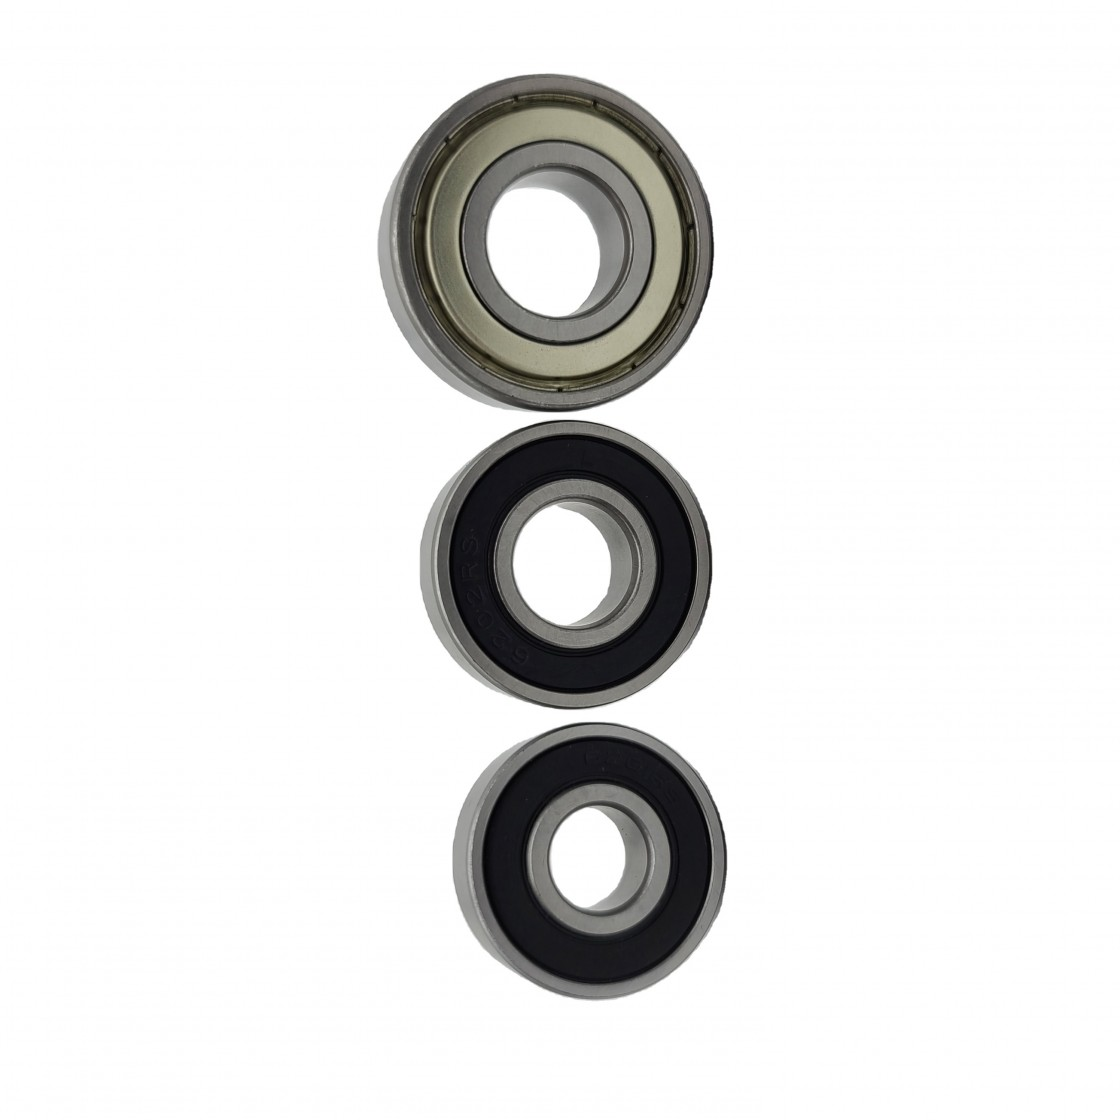 C5 Miniature Full Complement 688 Hybrid Ceramic Bearing